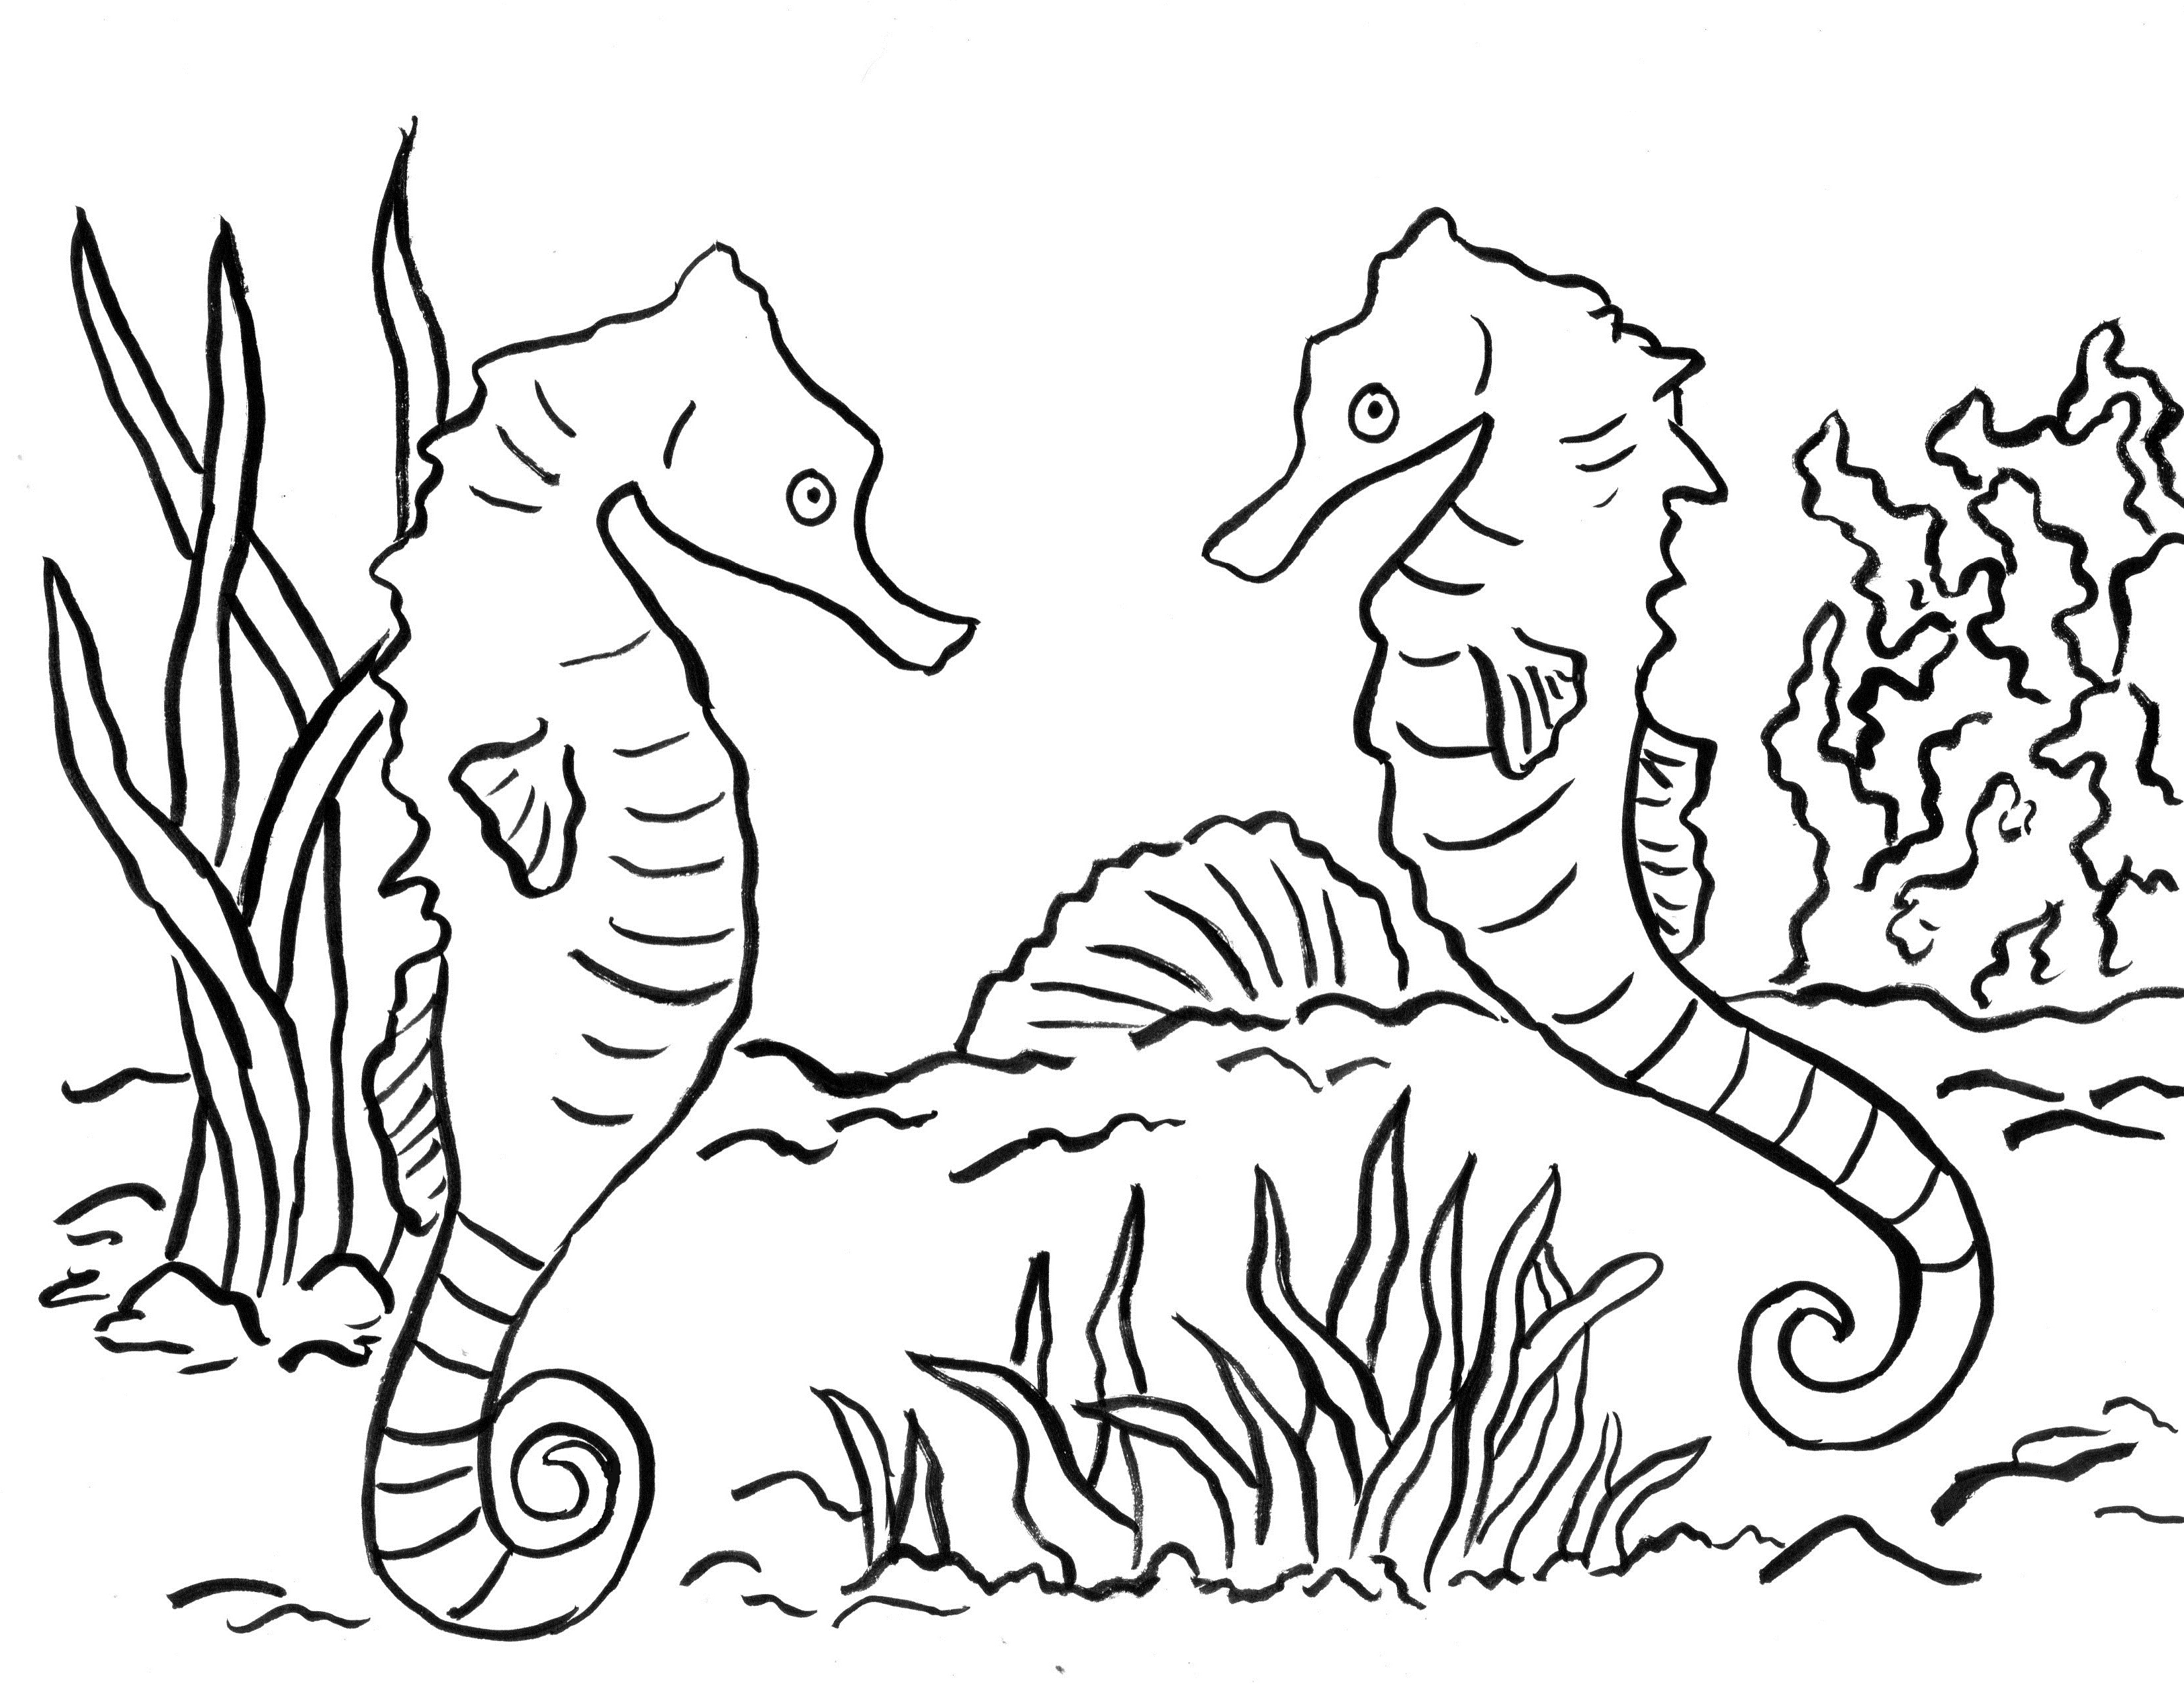 seahorse color sheet free printable seahorse coloring pages for kids color seahorse sheet